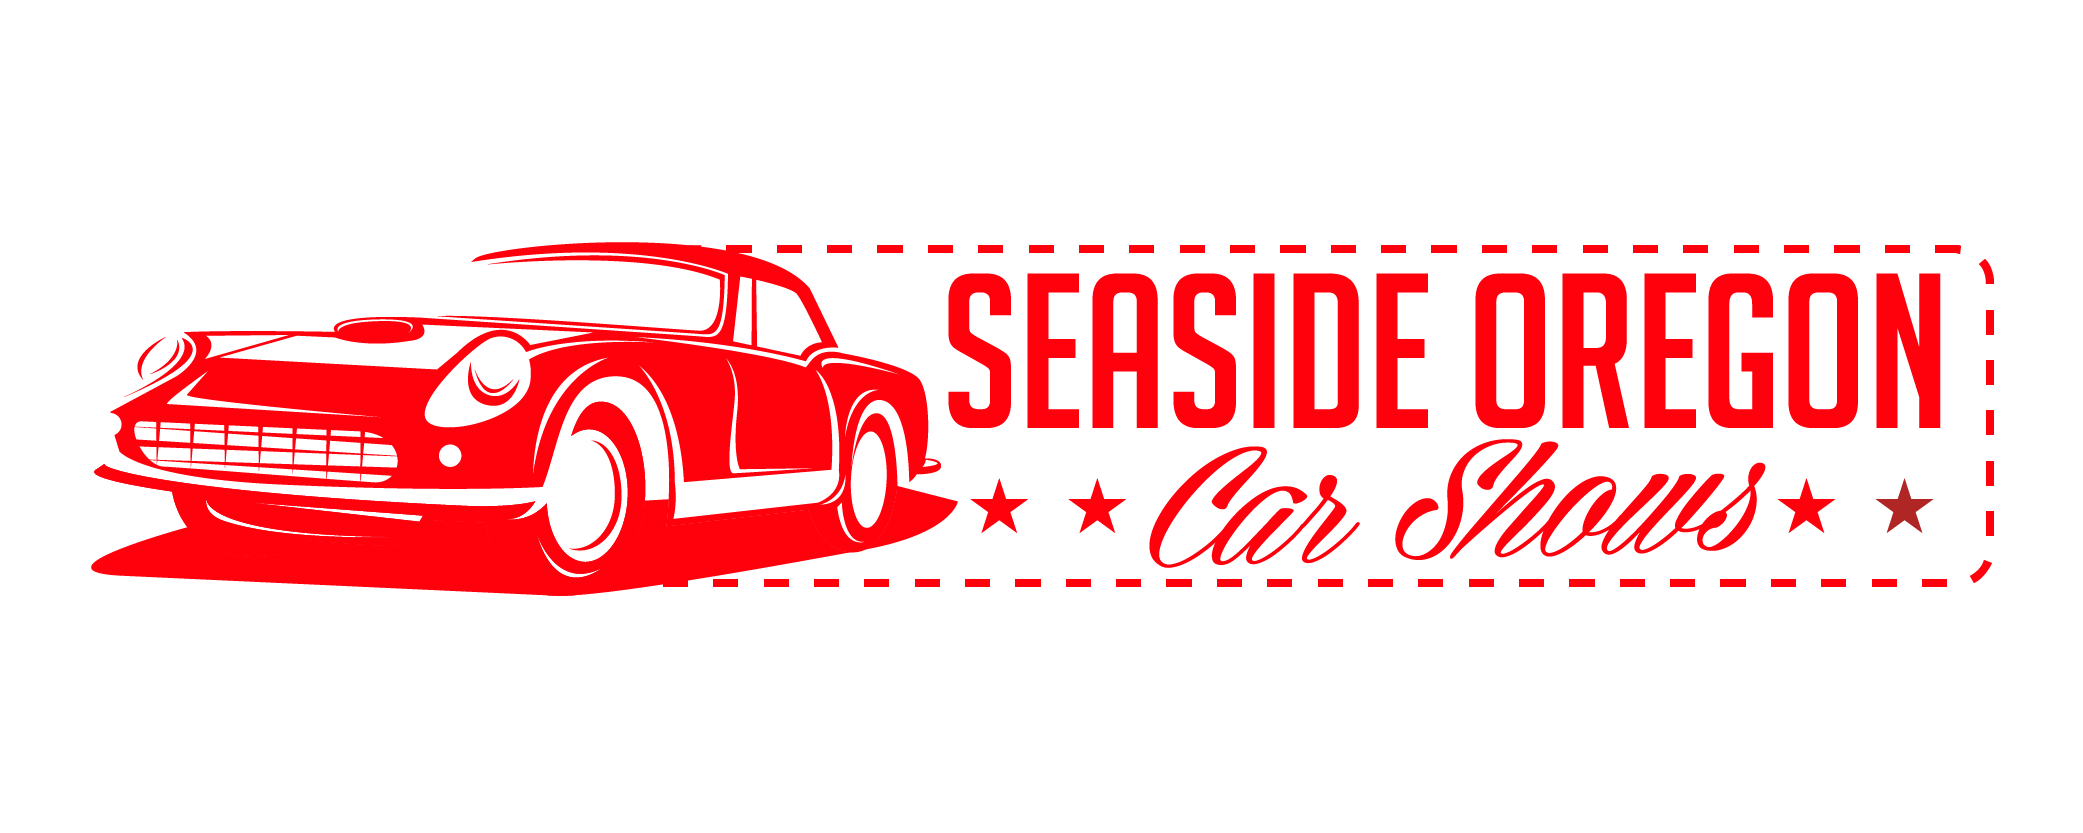 Seaside, Oregon Car Shows